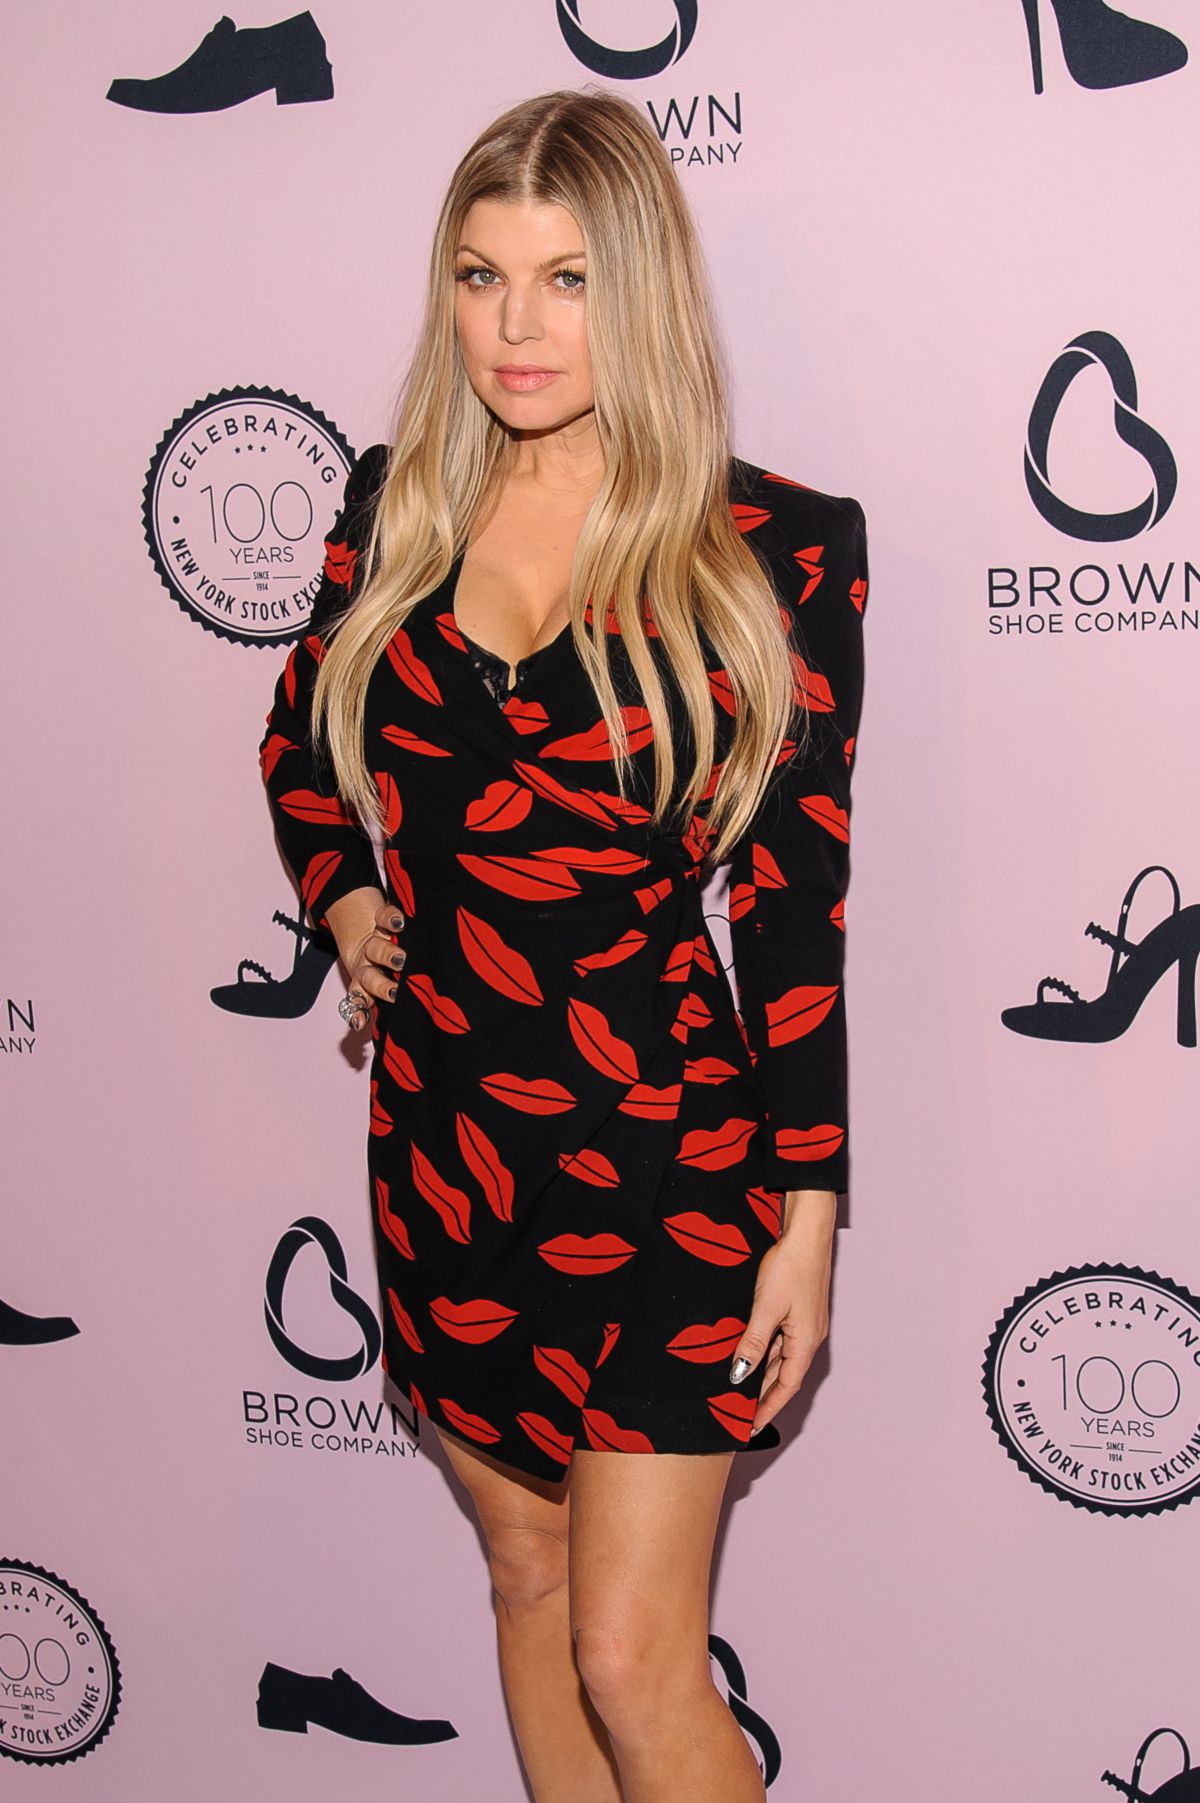 STACY FERGIE FERGUSON at Brown Shoe Company Event